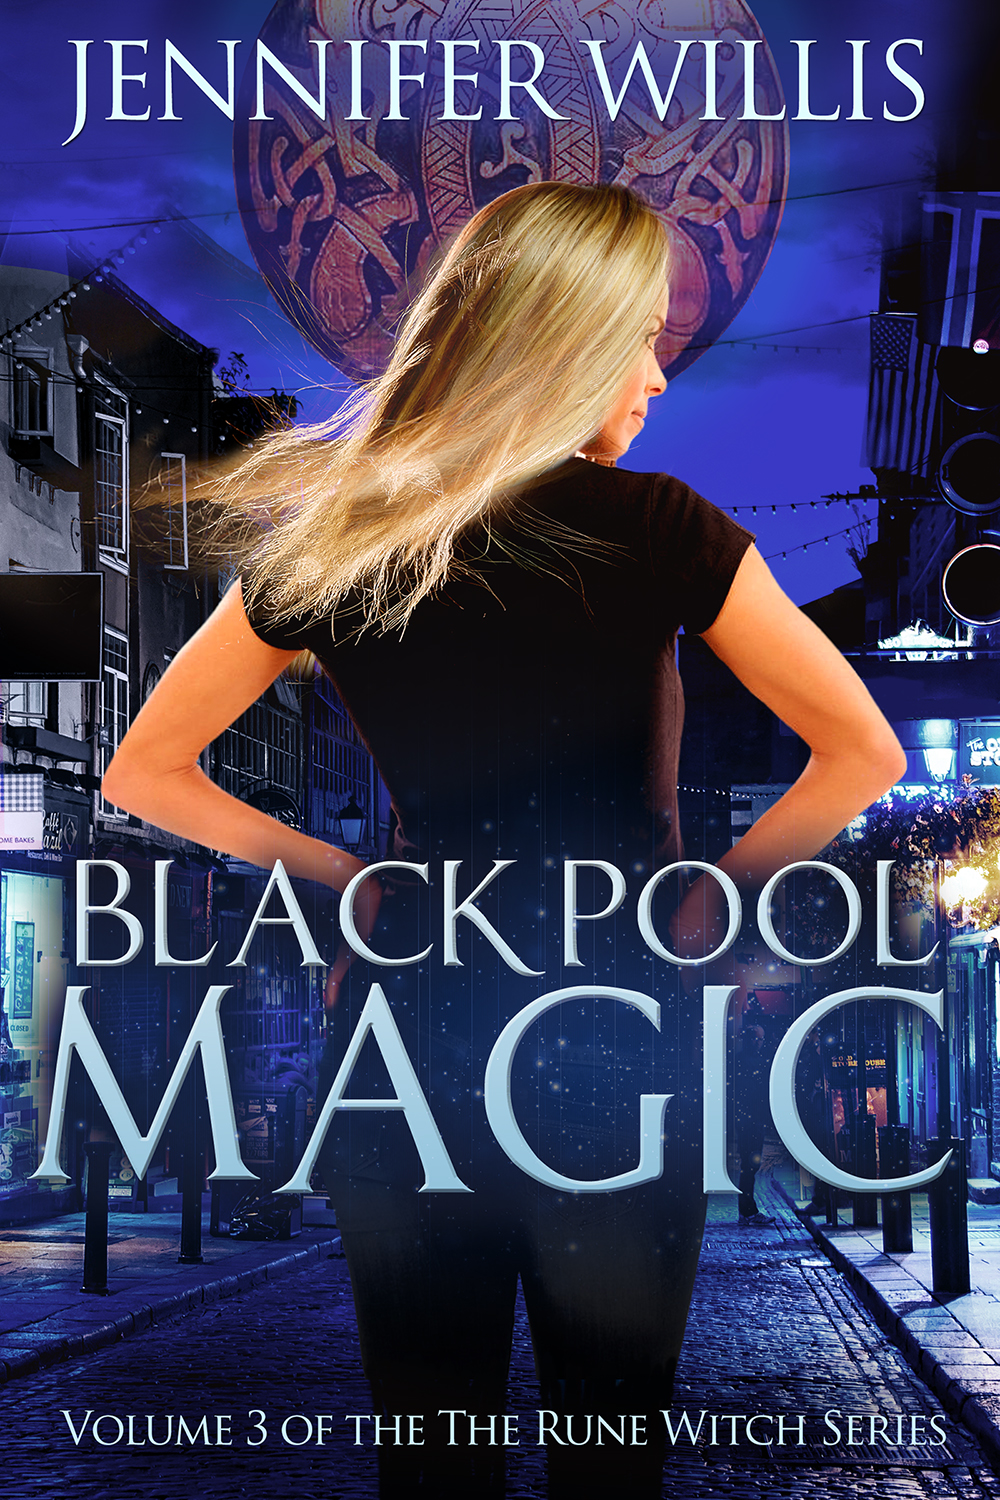 Black Pool Magic (Rune Witch, Volume 3) by Jennifer Willis